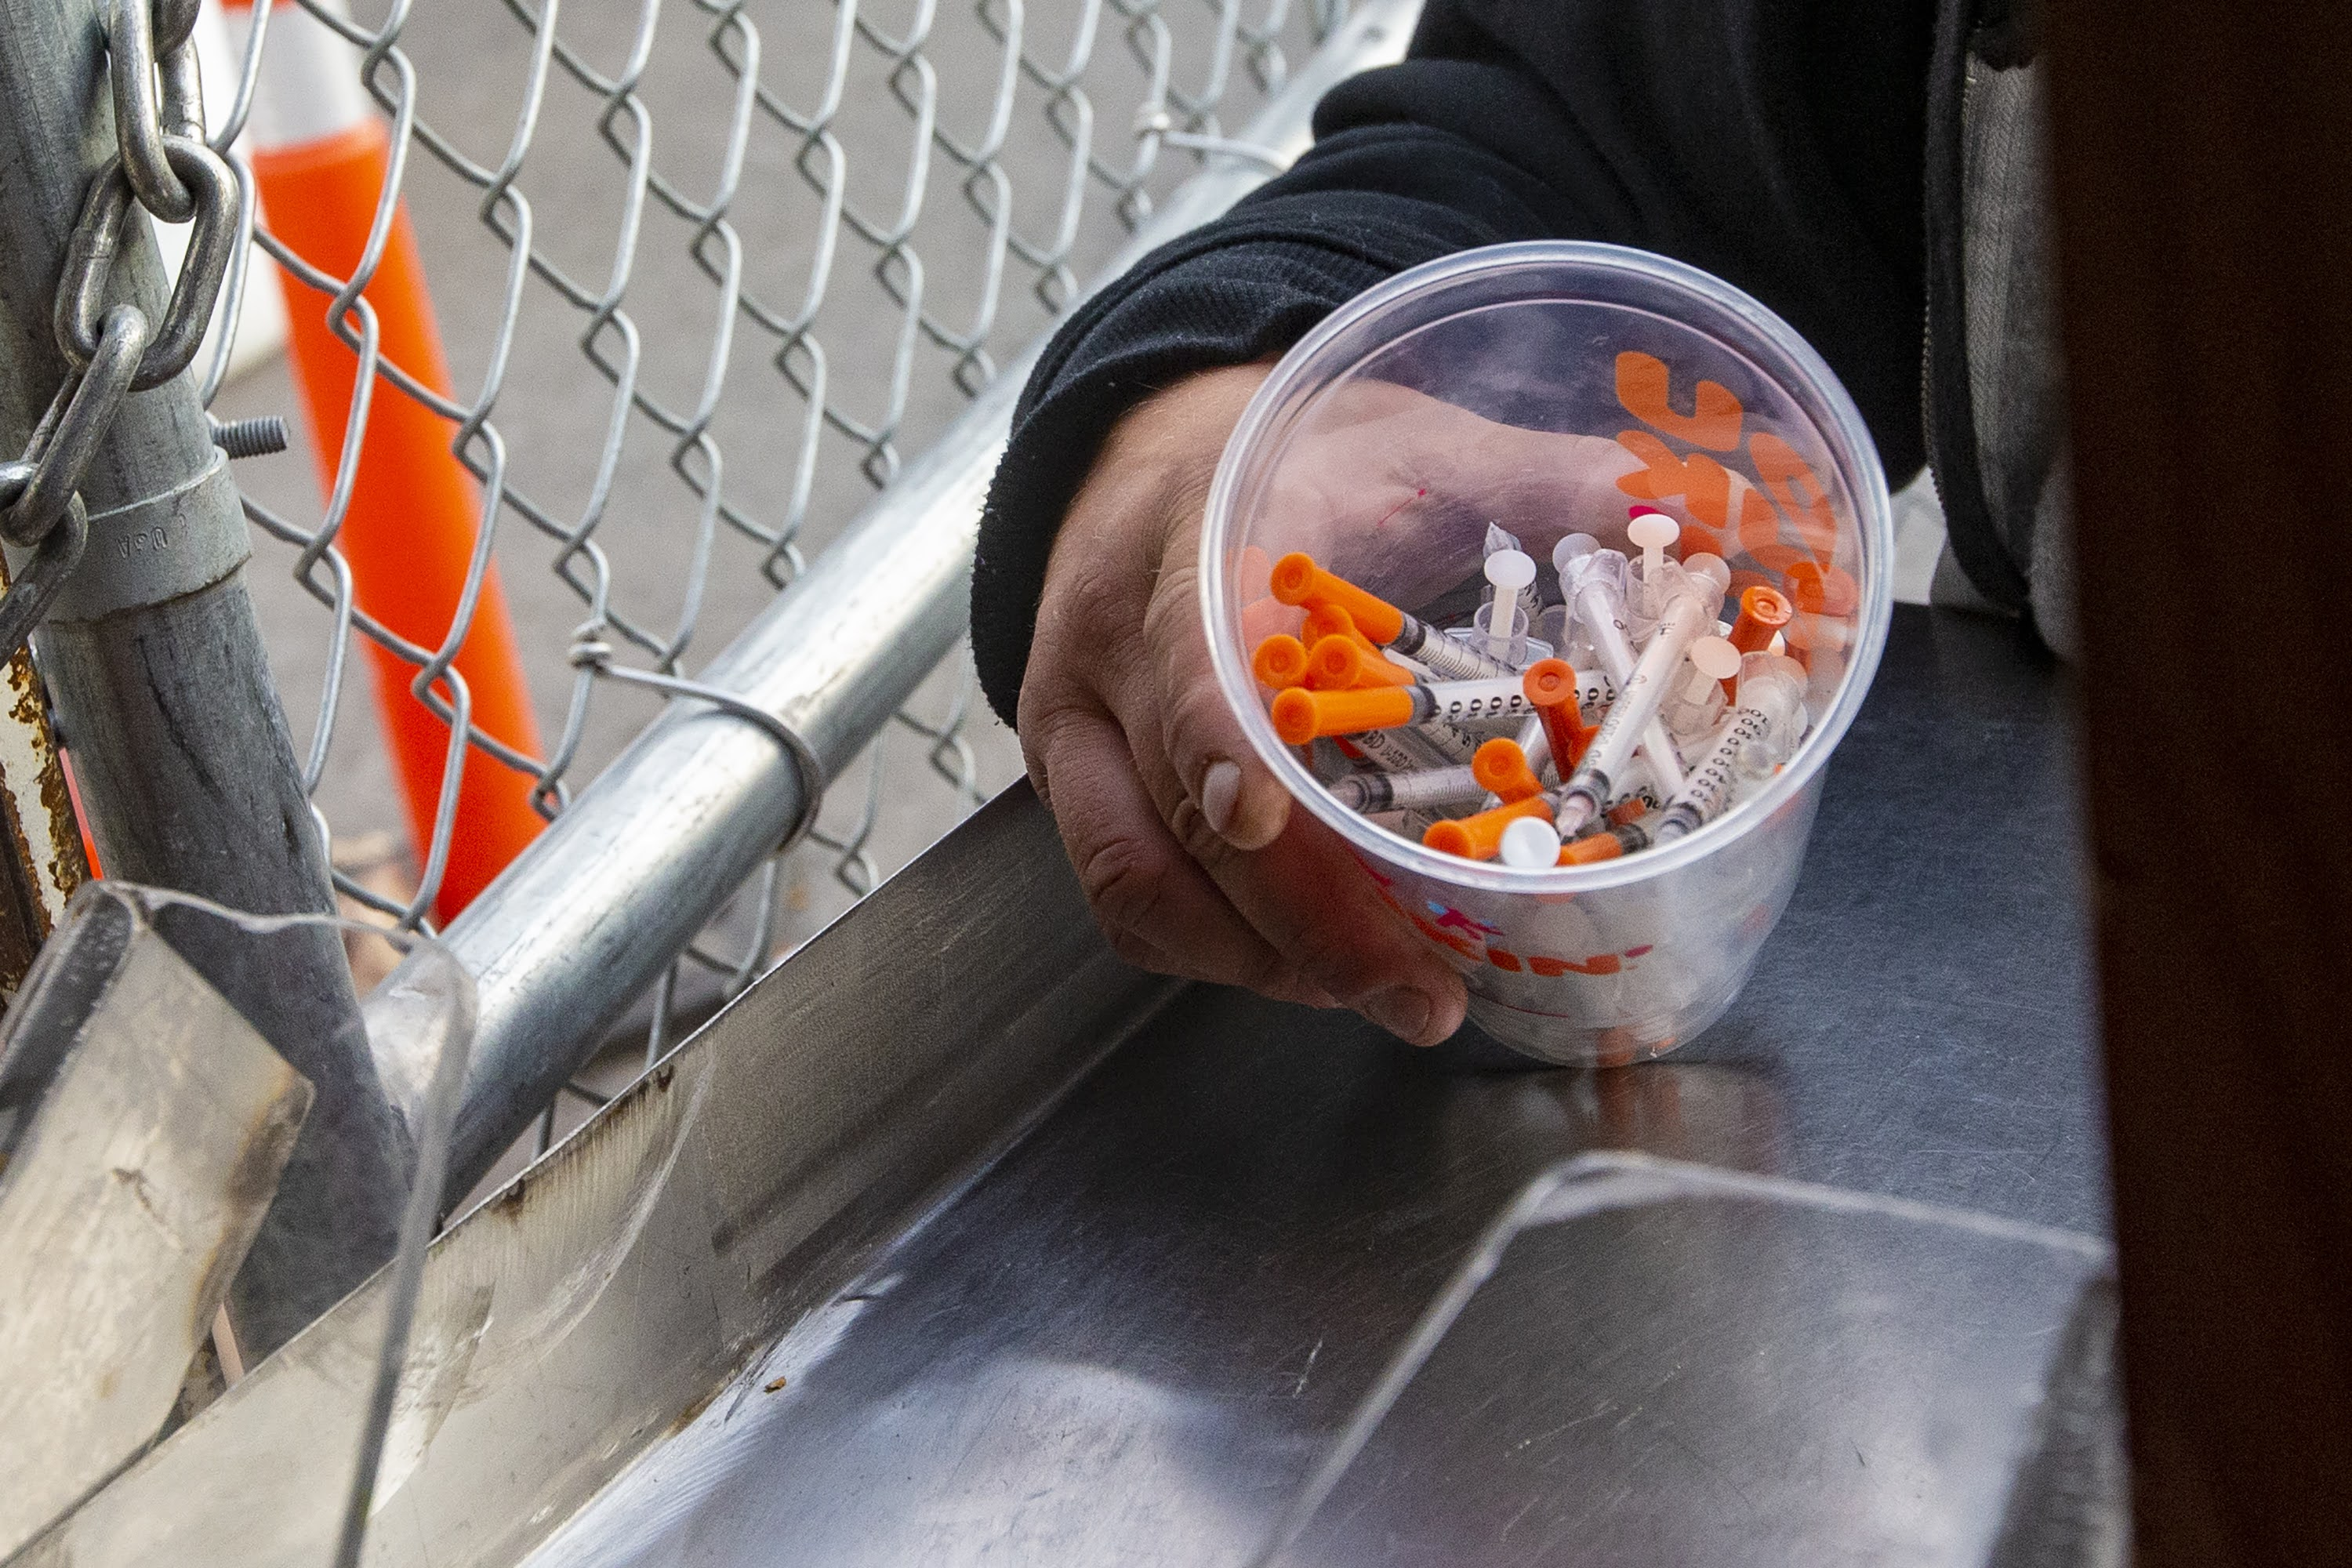 A man prepares to dump out a cup full of syringes at onto the counter as part of a syringe buy-back project in Boston run by the Community Syringe Redemption Program. (Jesse Costa/WBUR)